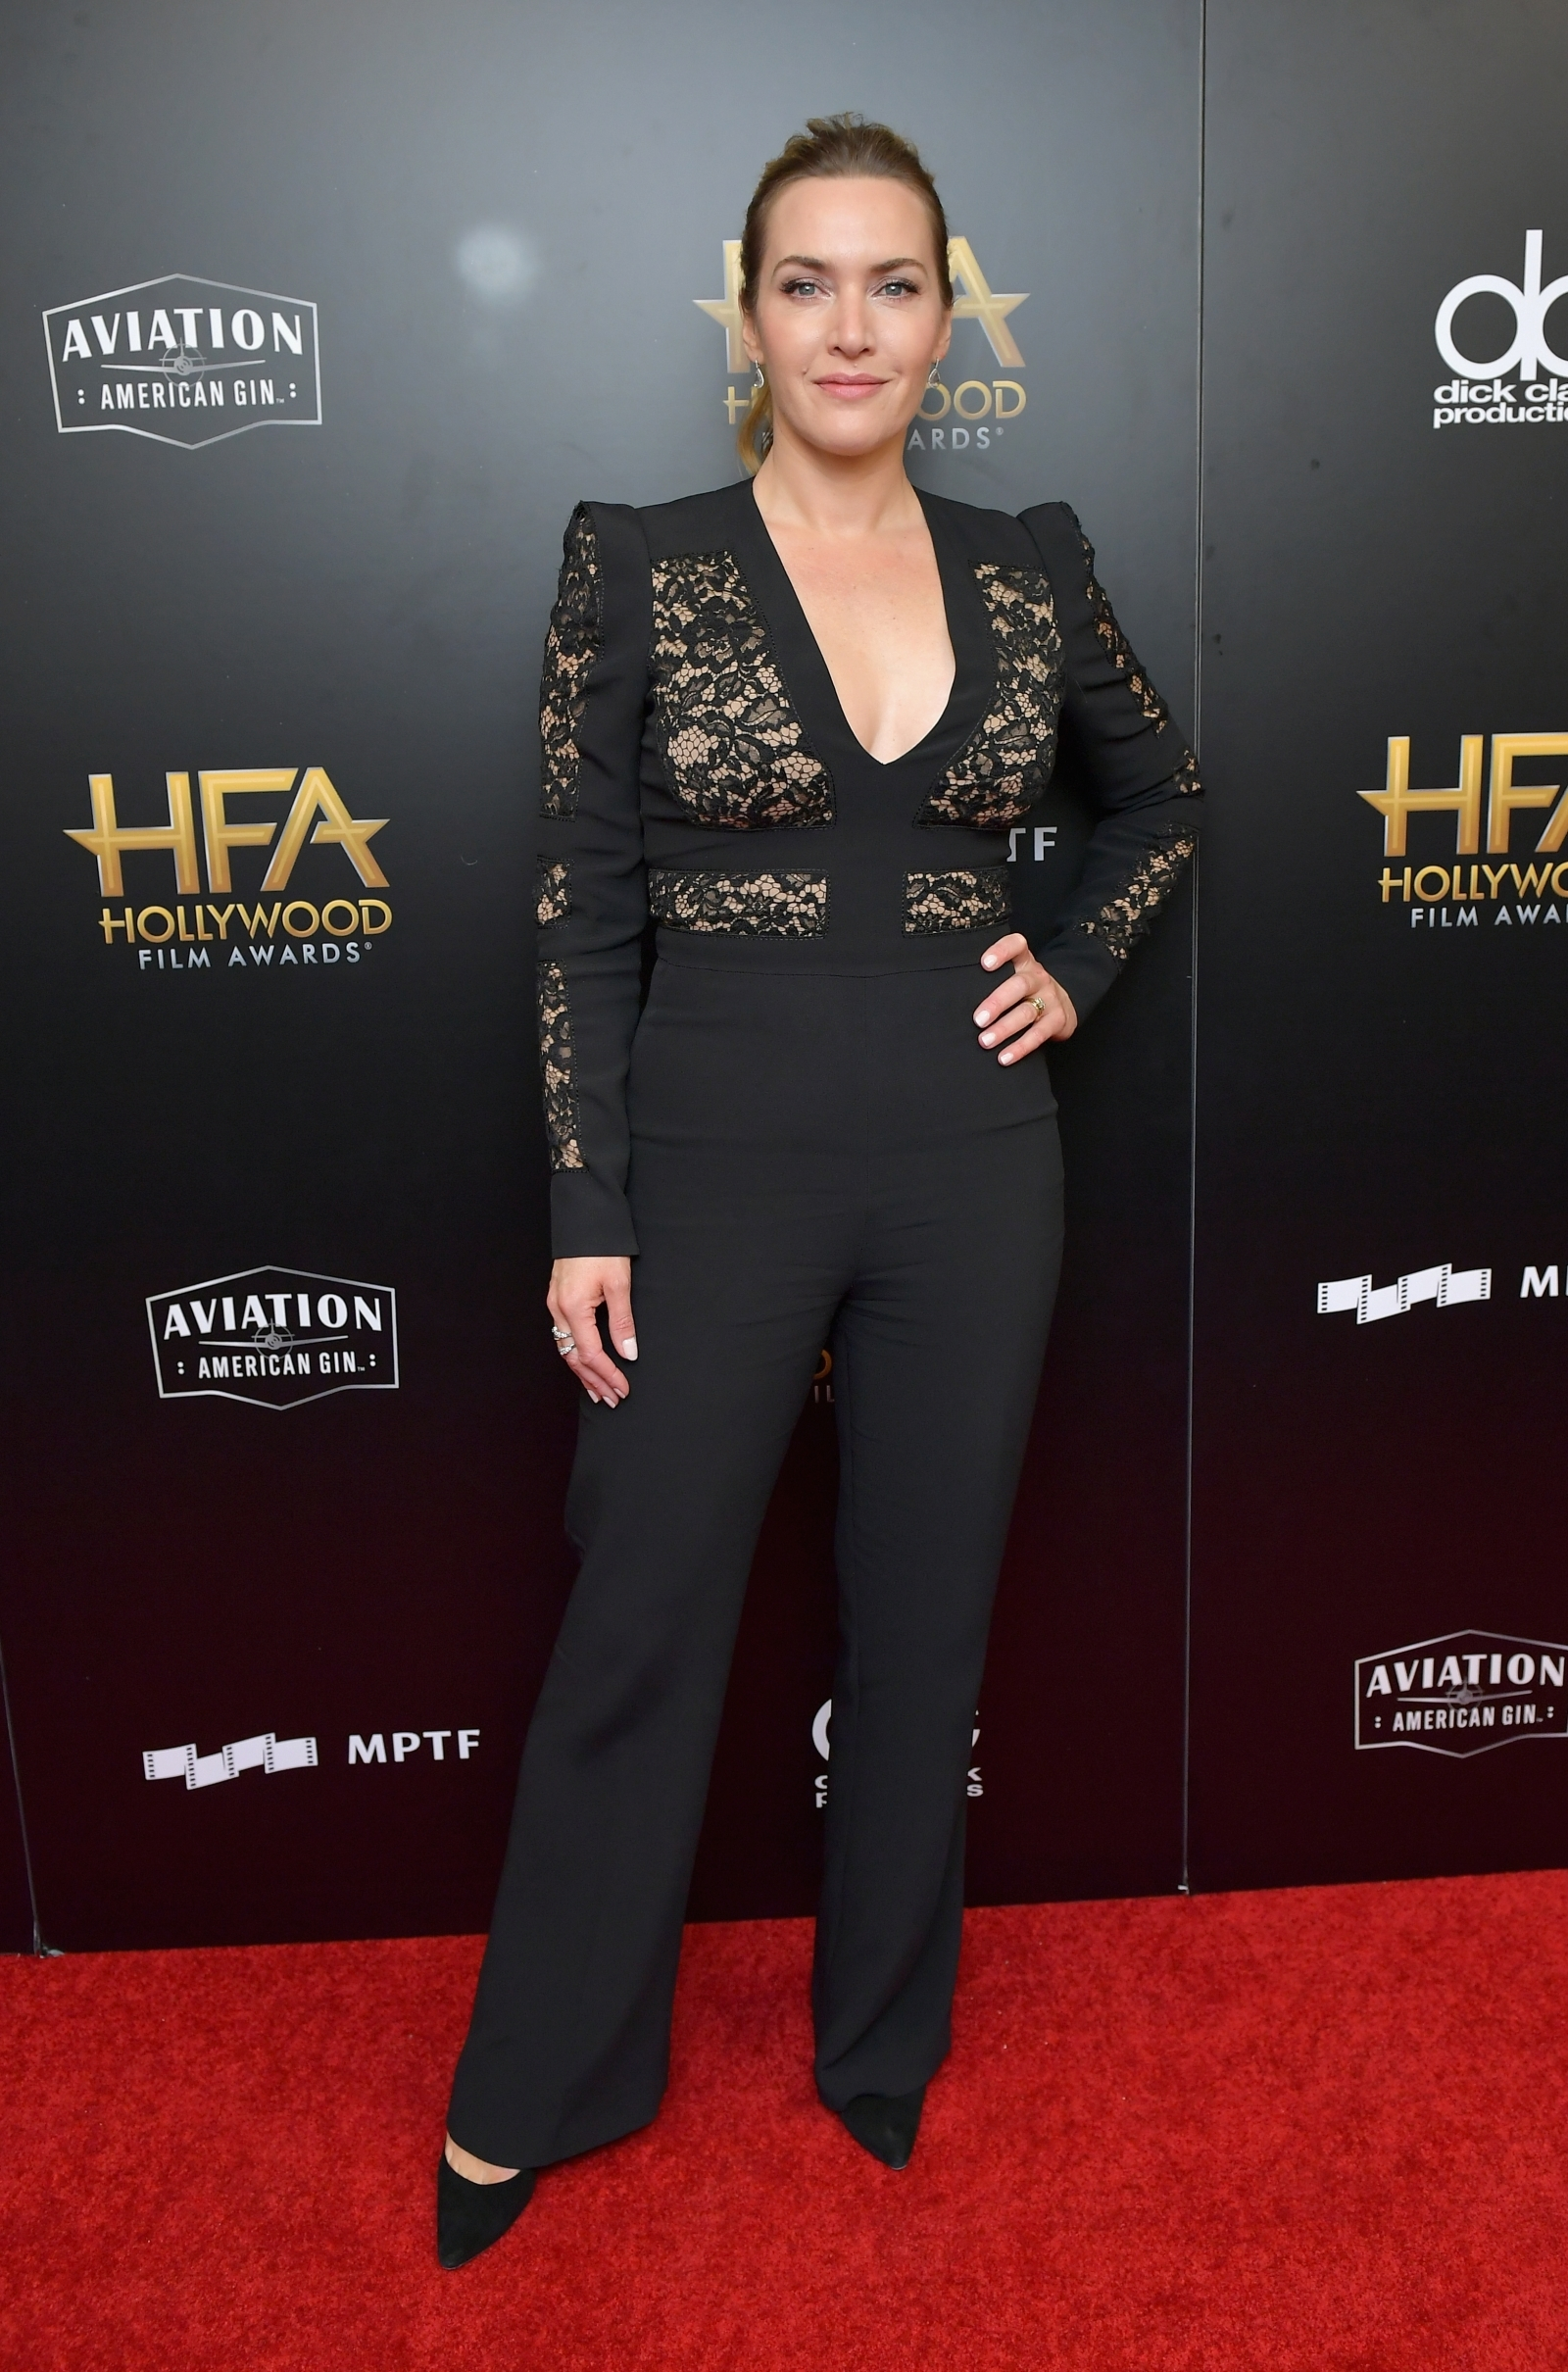 Resultado de imagem para hollywood film awards 2017 red carpet kate winslet